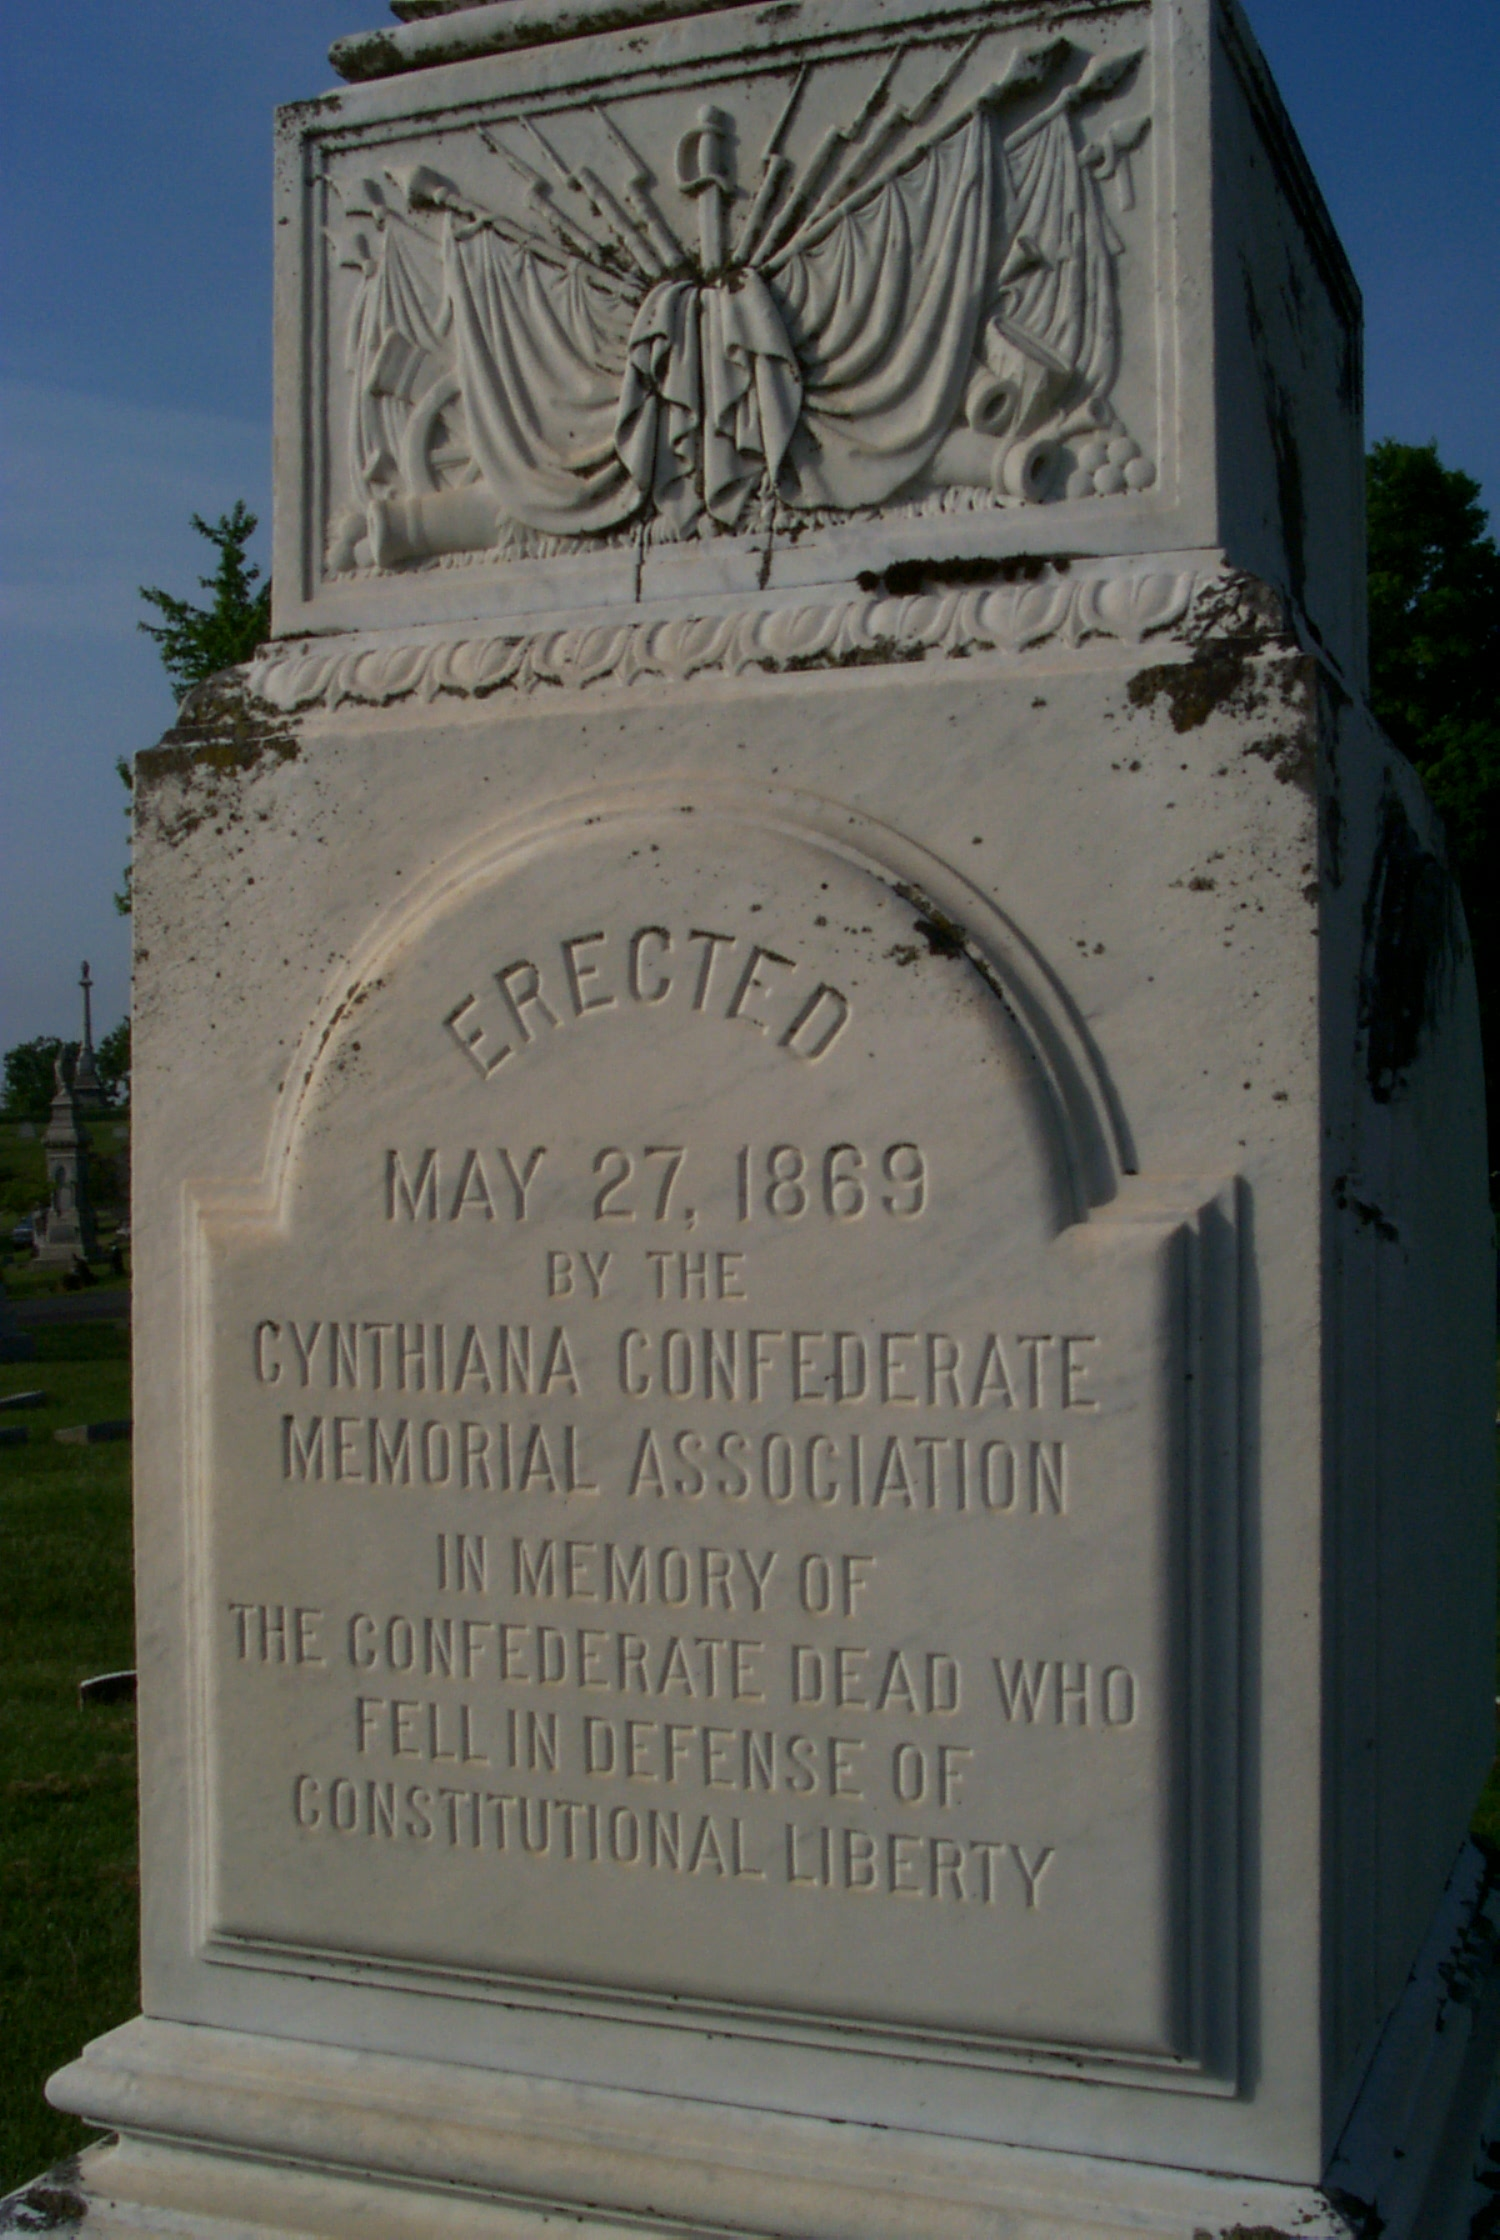 Inscription on the front of the monument.